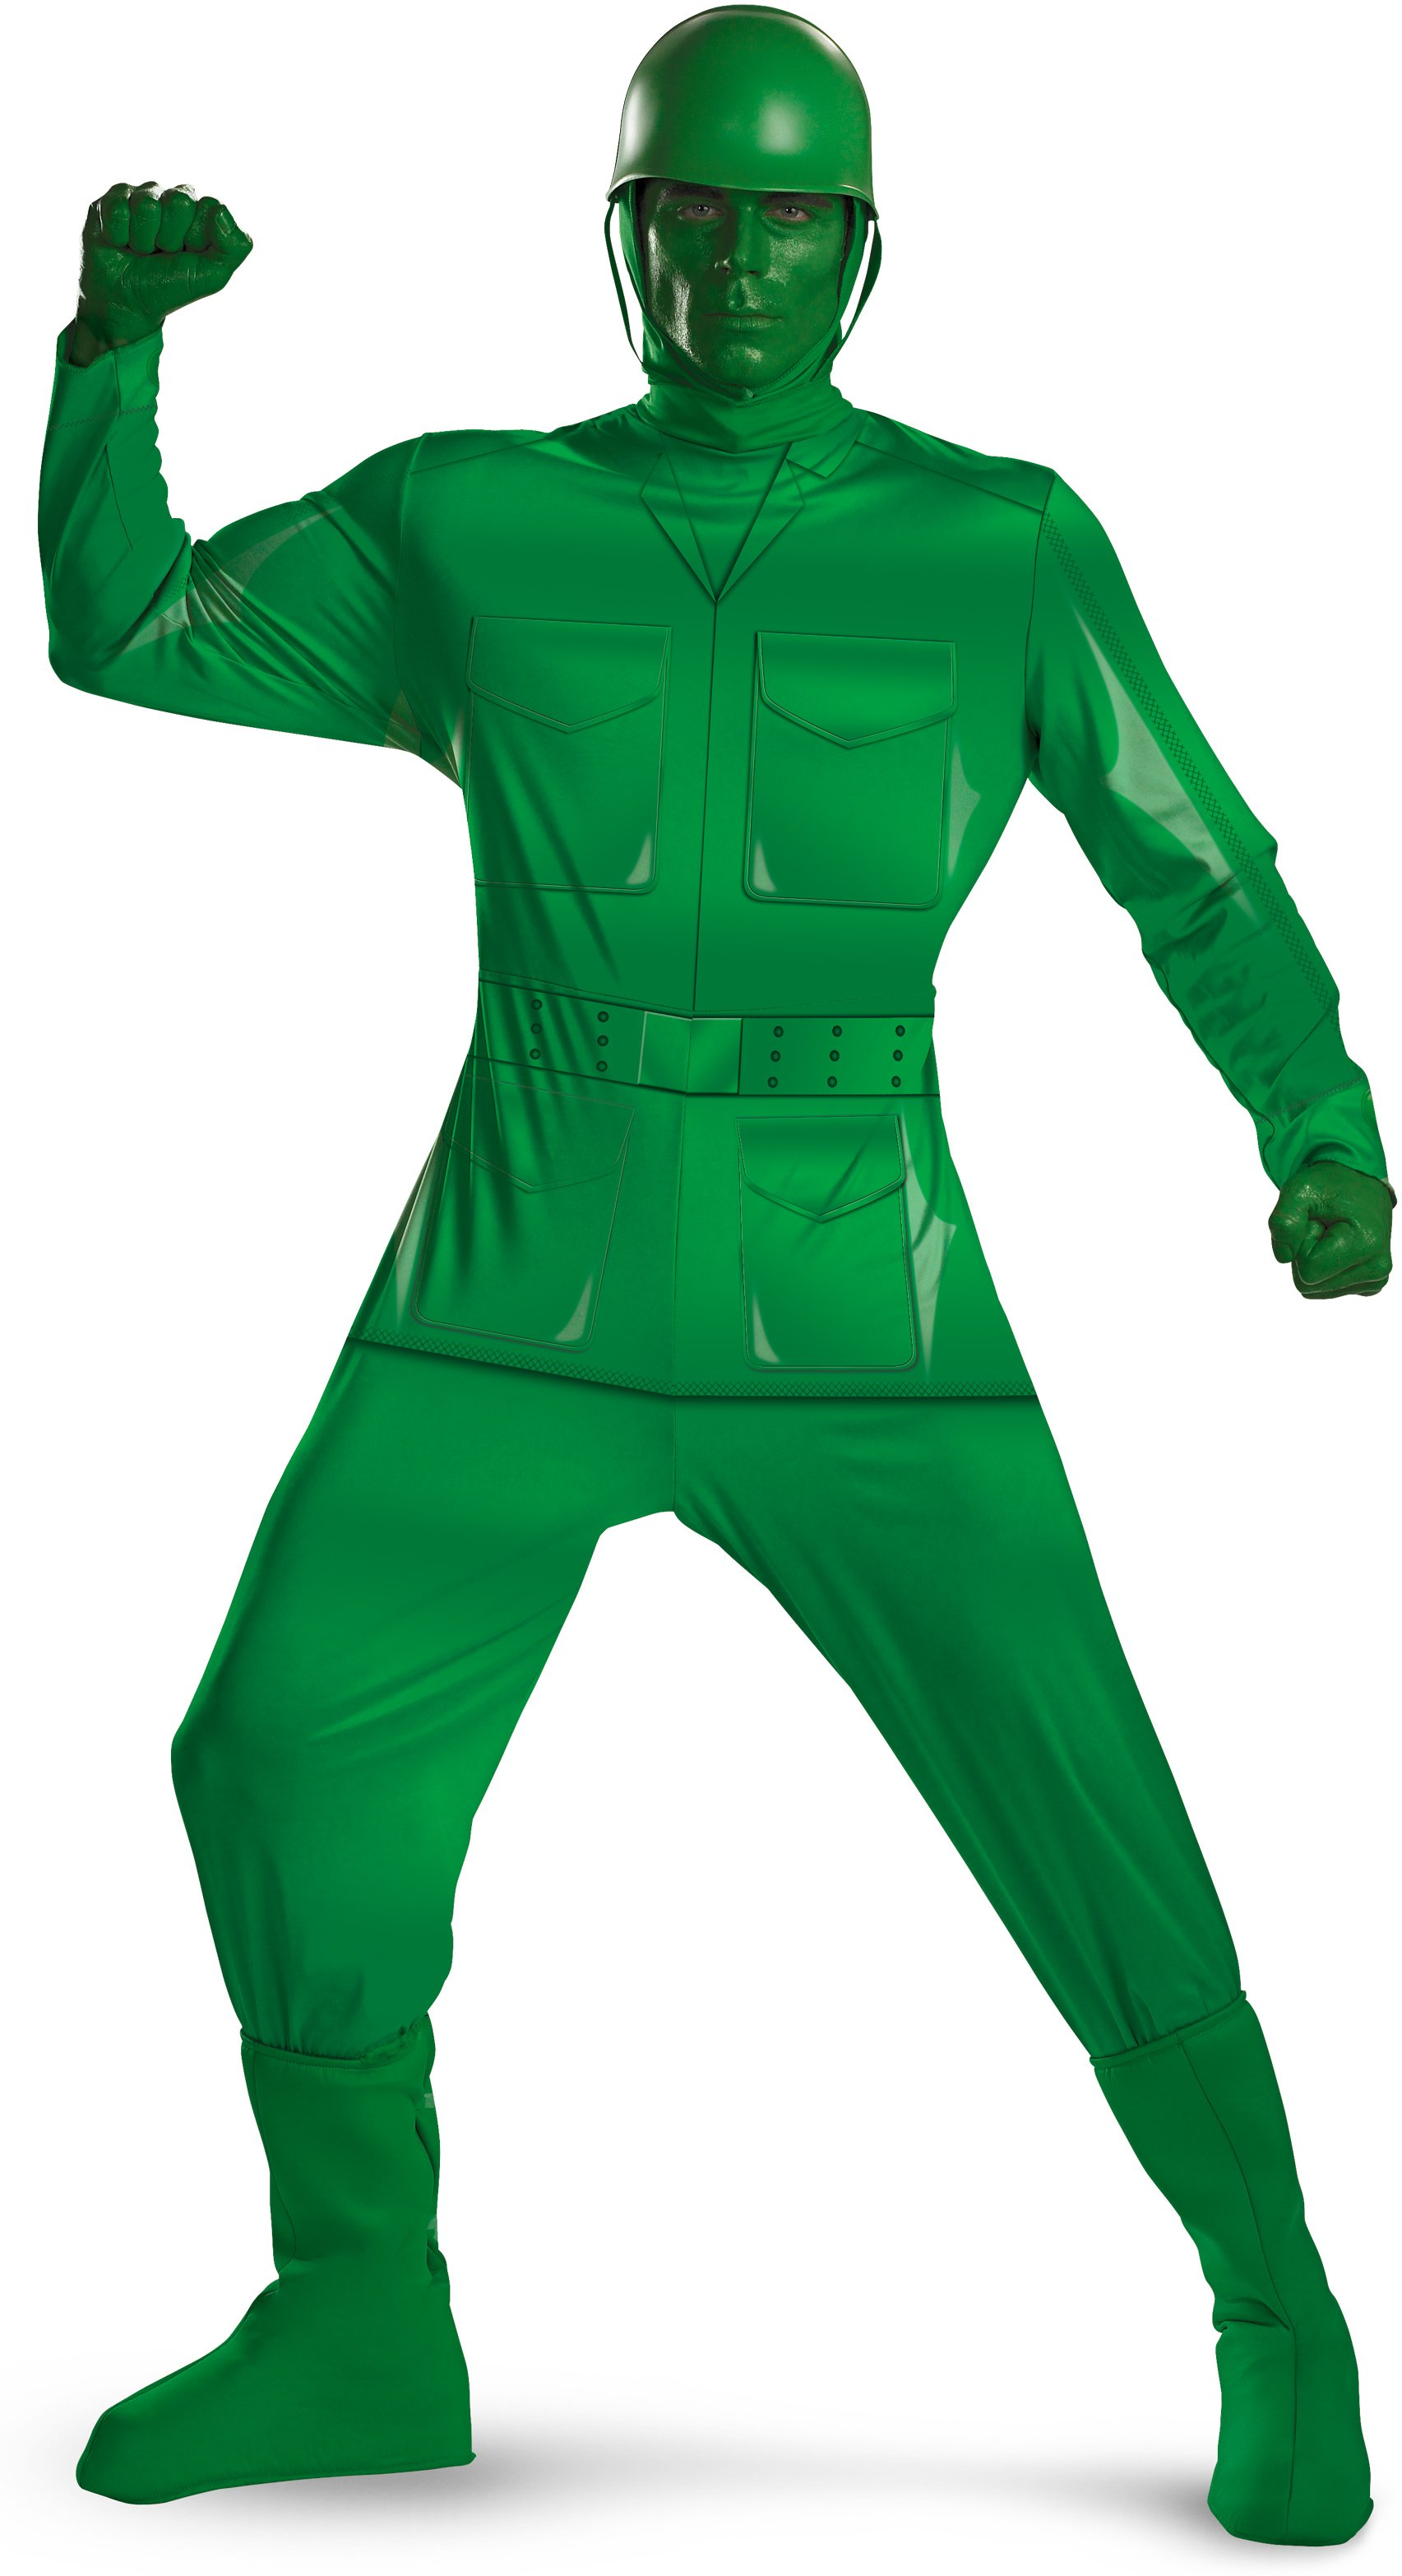 Toy Story - Green Army Man Deluxe Plus Adult Costume